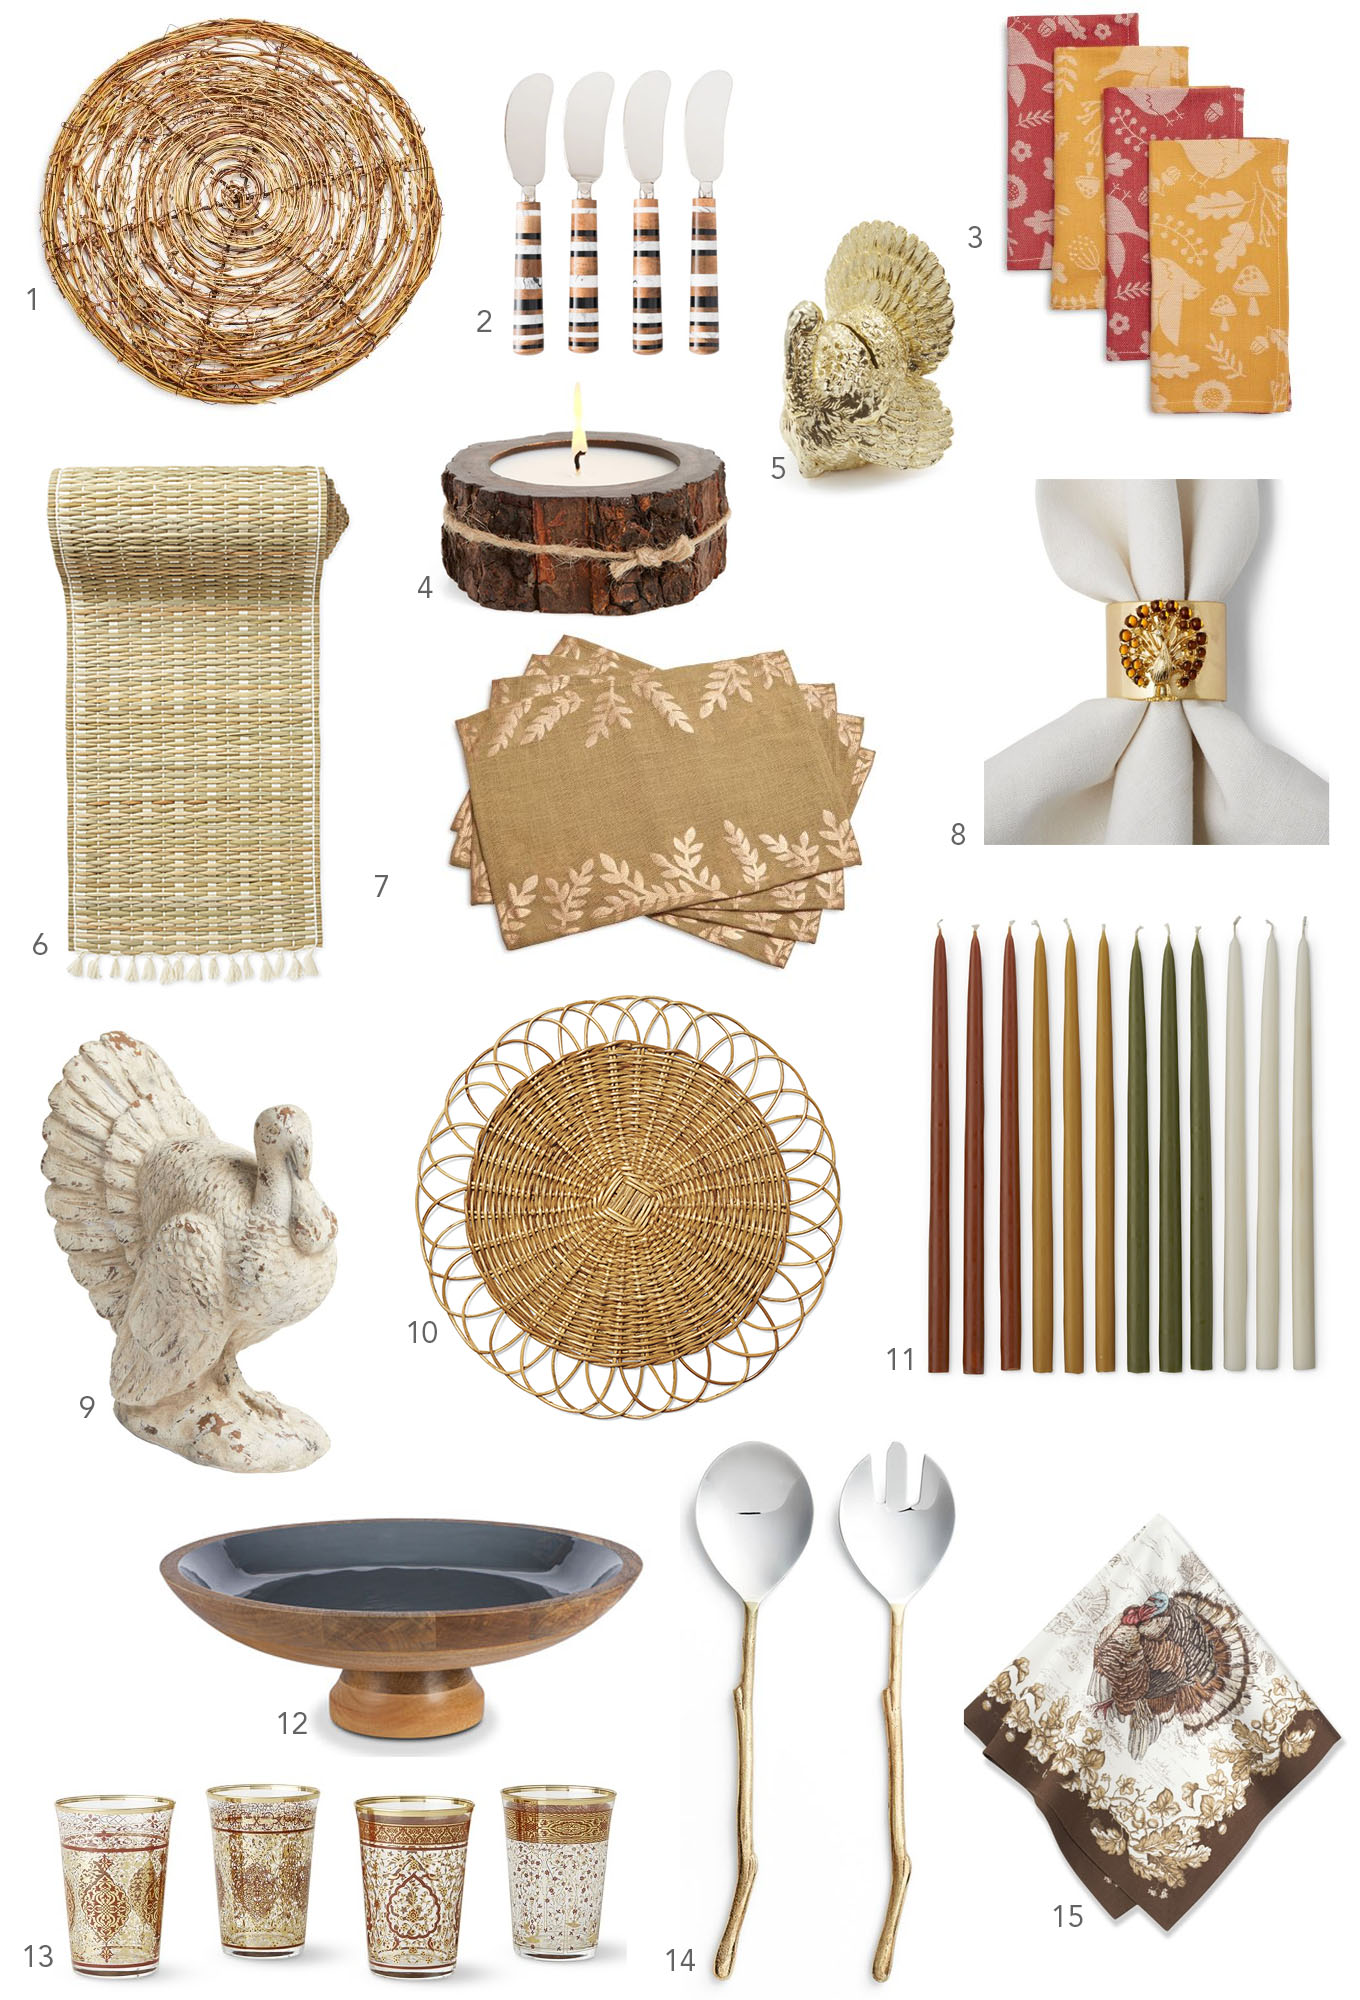 It is never to early to get ready for Thanksgiving and Ridgely Brode found 15 table accessories to get you inspired on her blog Ridgely's Radar.